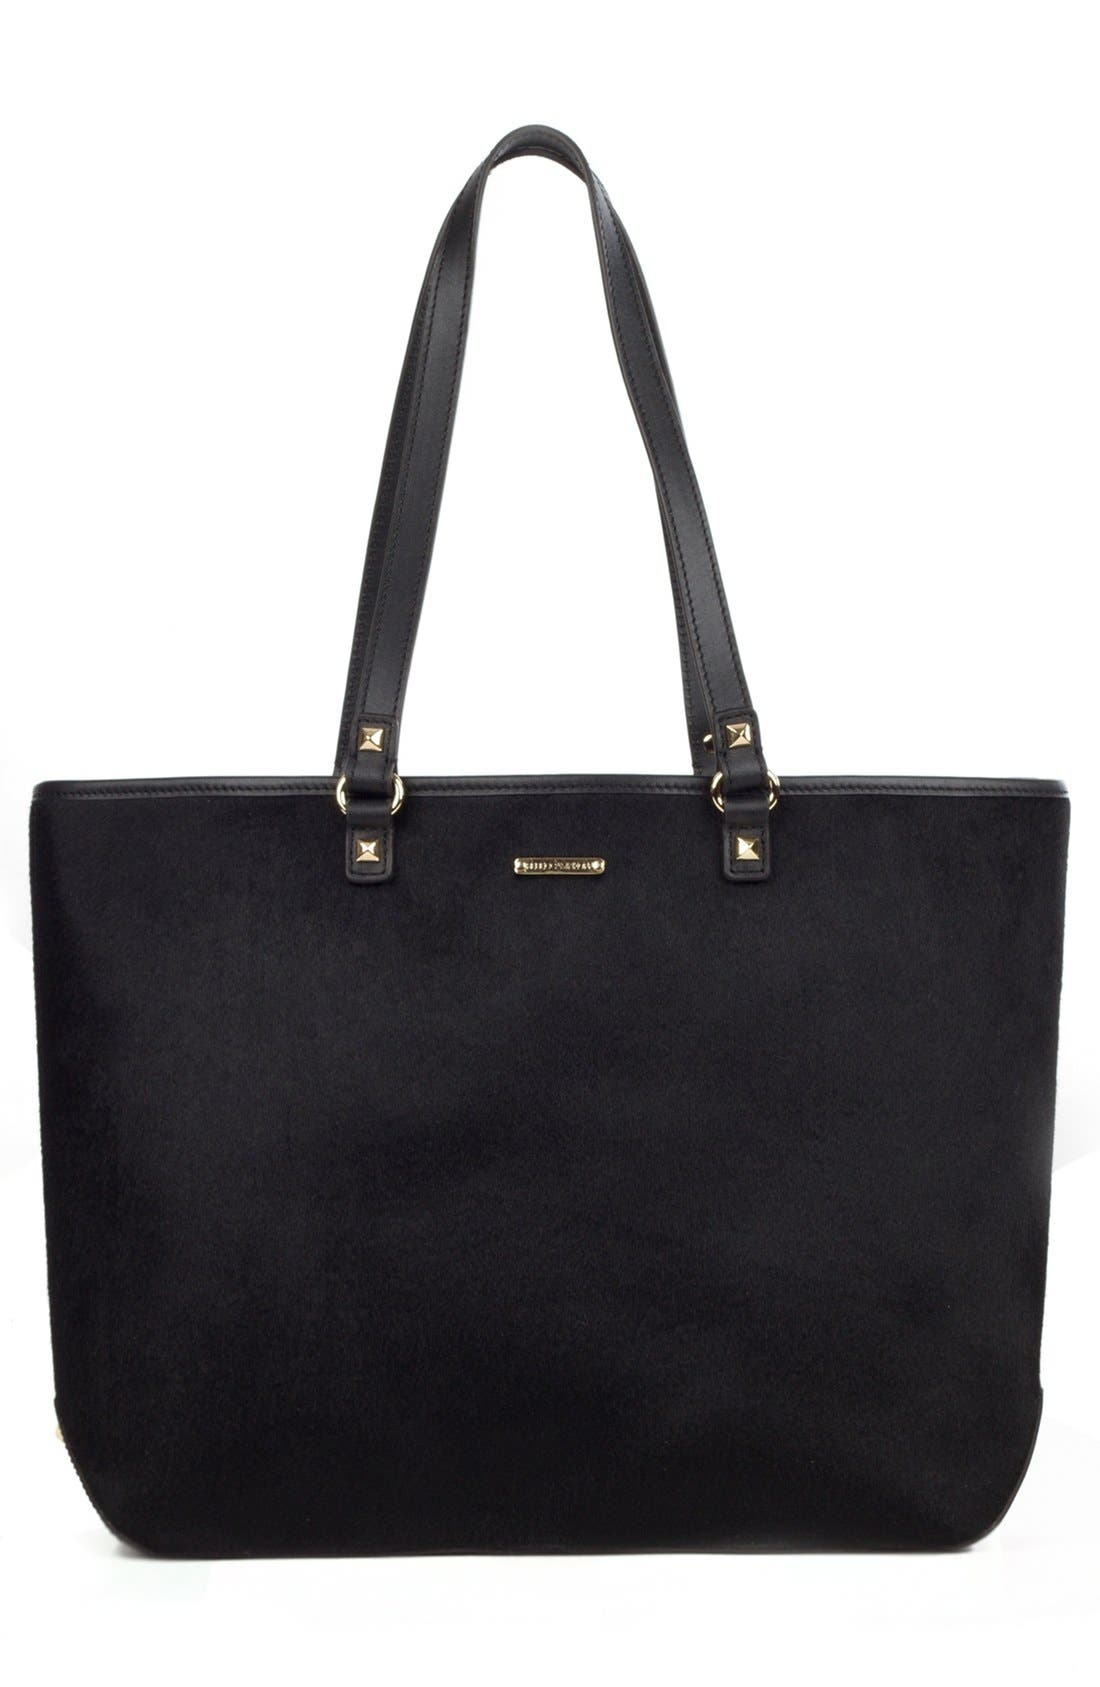 Main Image - Rebecca Minkoff 'Dylan' Tote